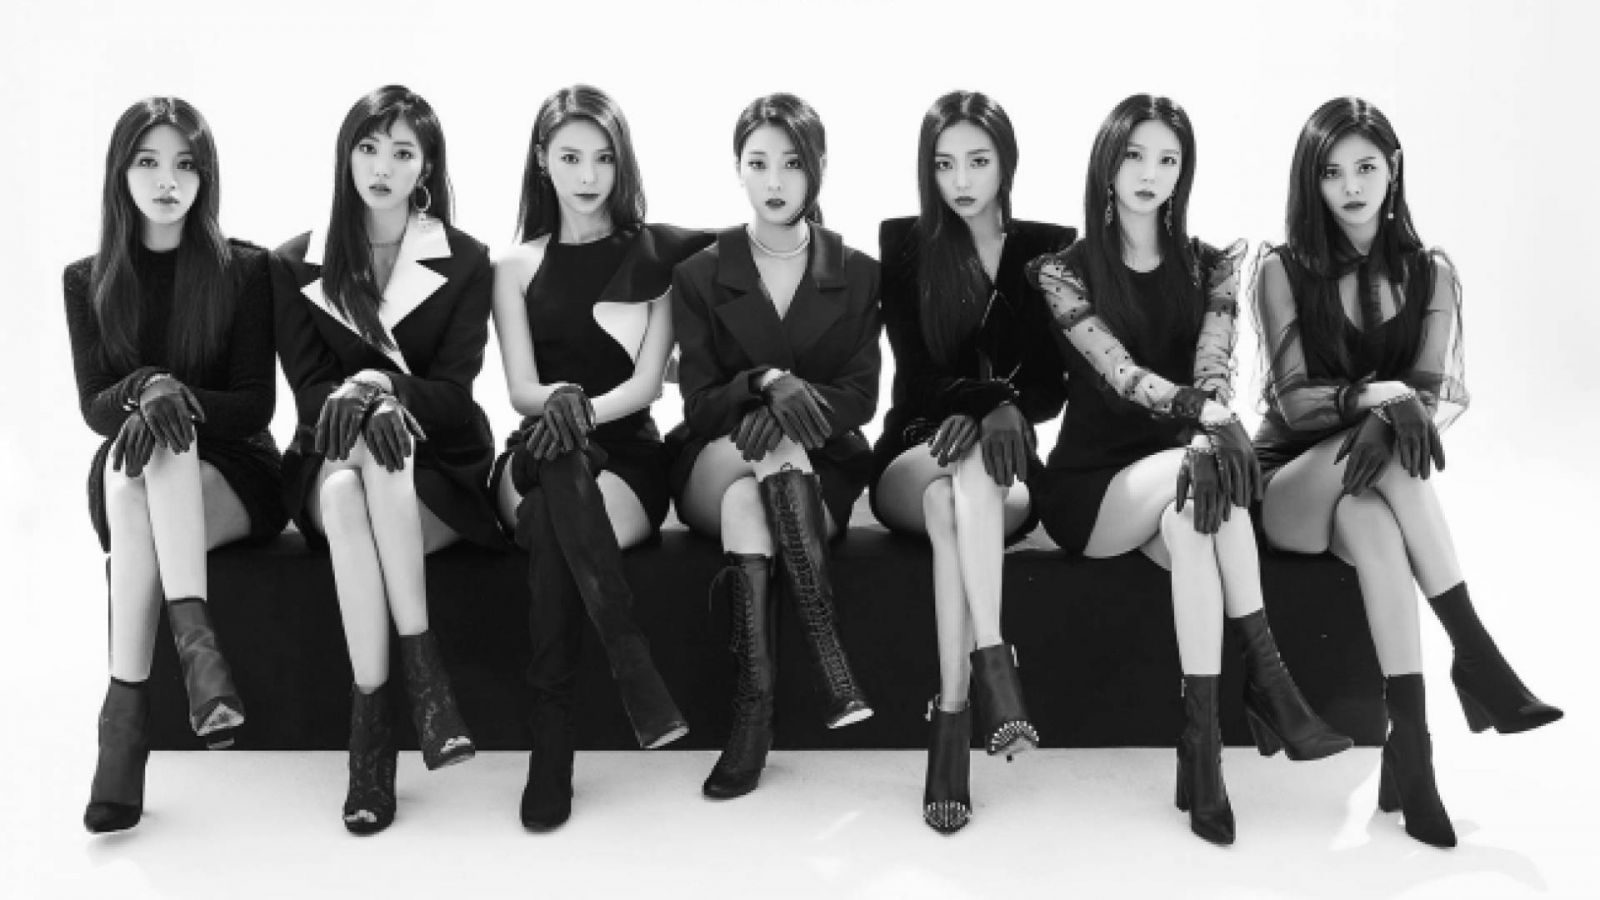 CLC:n uusi minialbumi Black Dress ilmestyy torstaina © Cube Entertainment. All Rights Reserved.